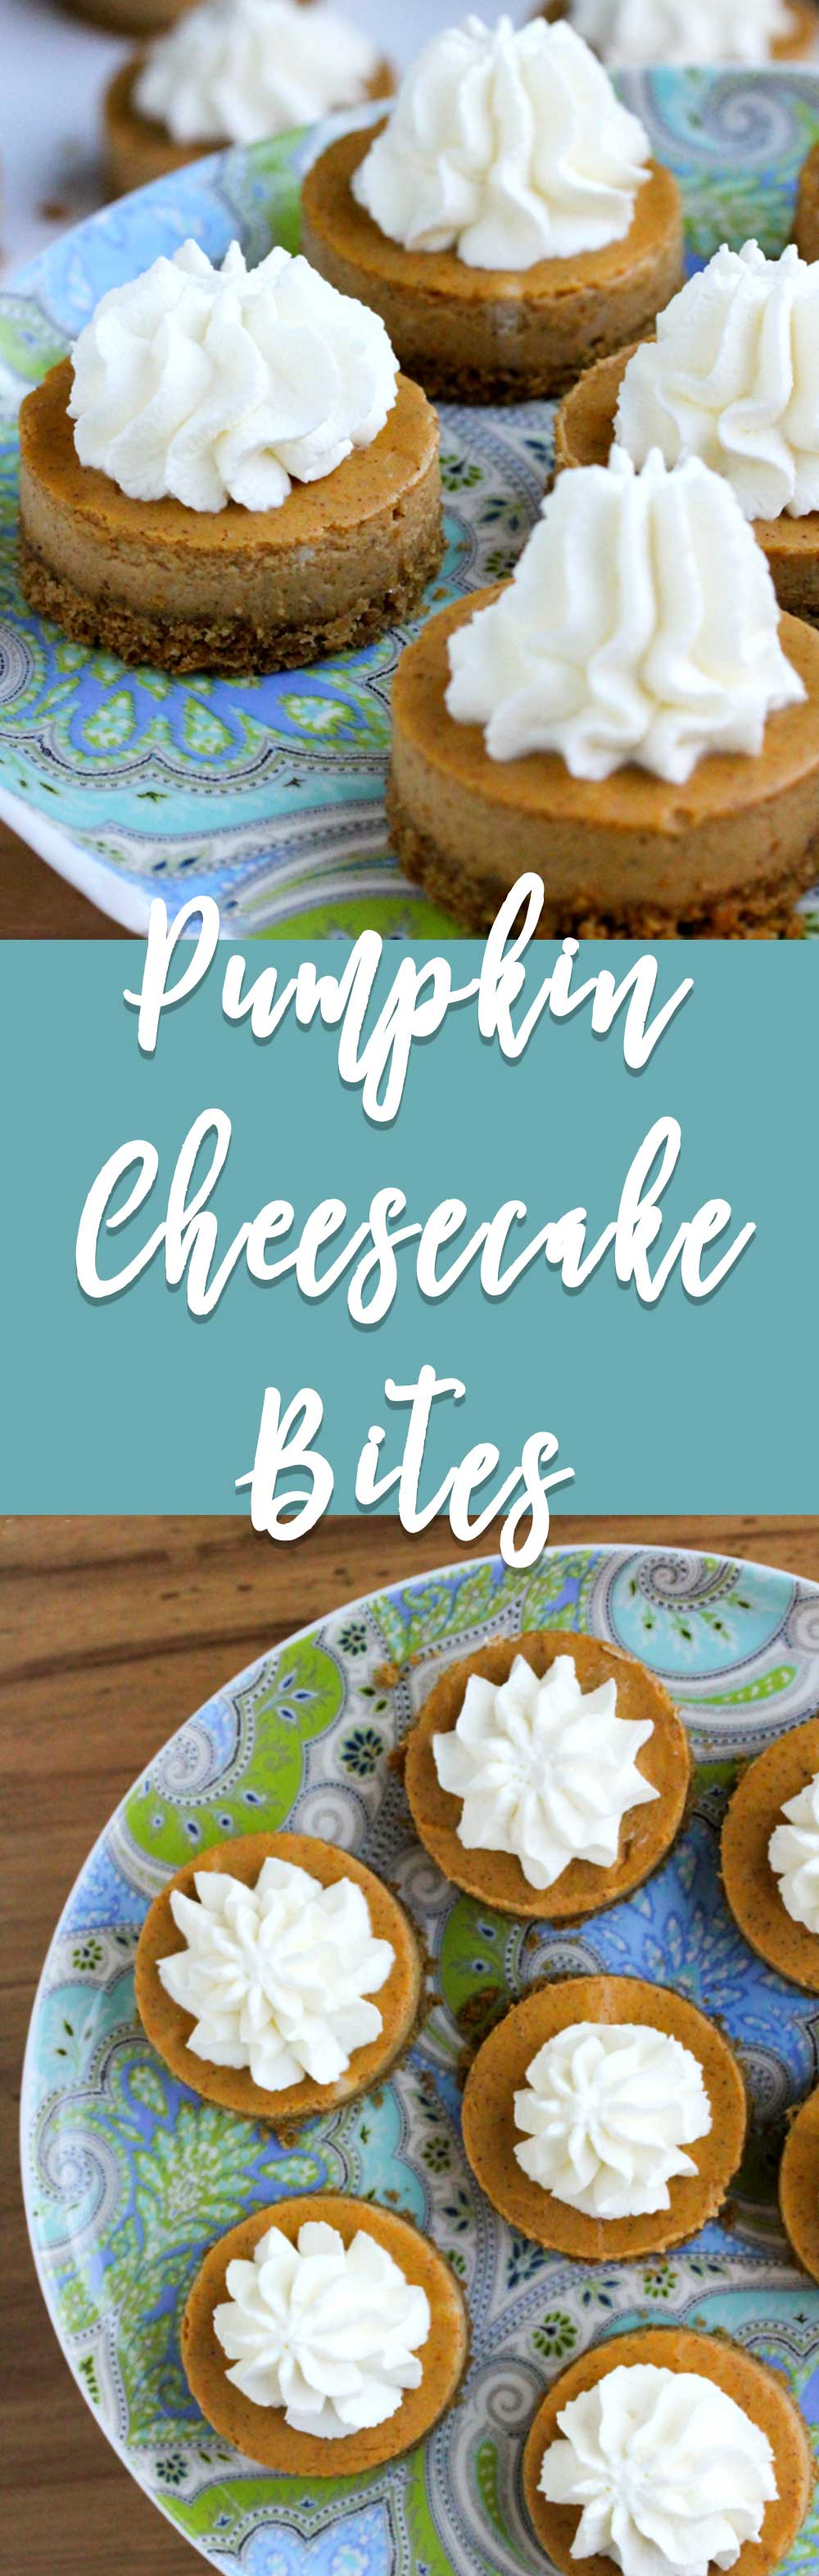 Pumpkin cheesecake bites have a buttery graham cracker crust with the perfect ratio of pumpkin cheesecake and topped with whipped cream.